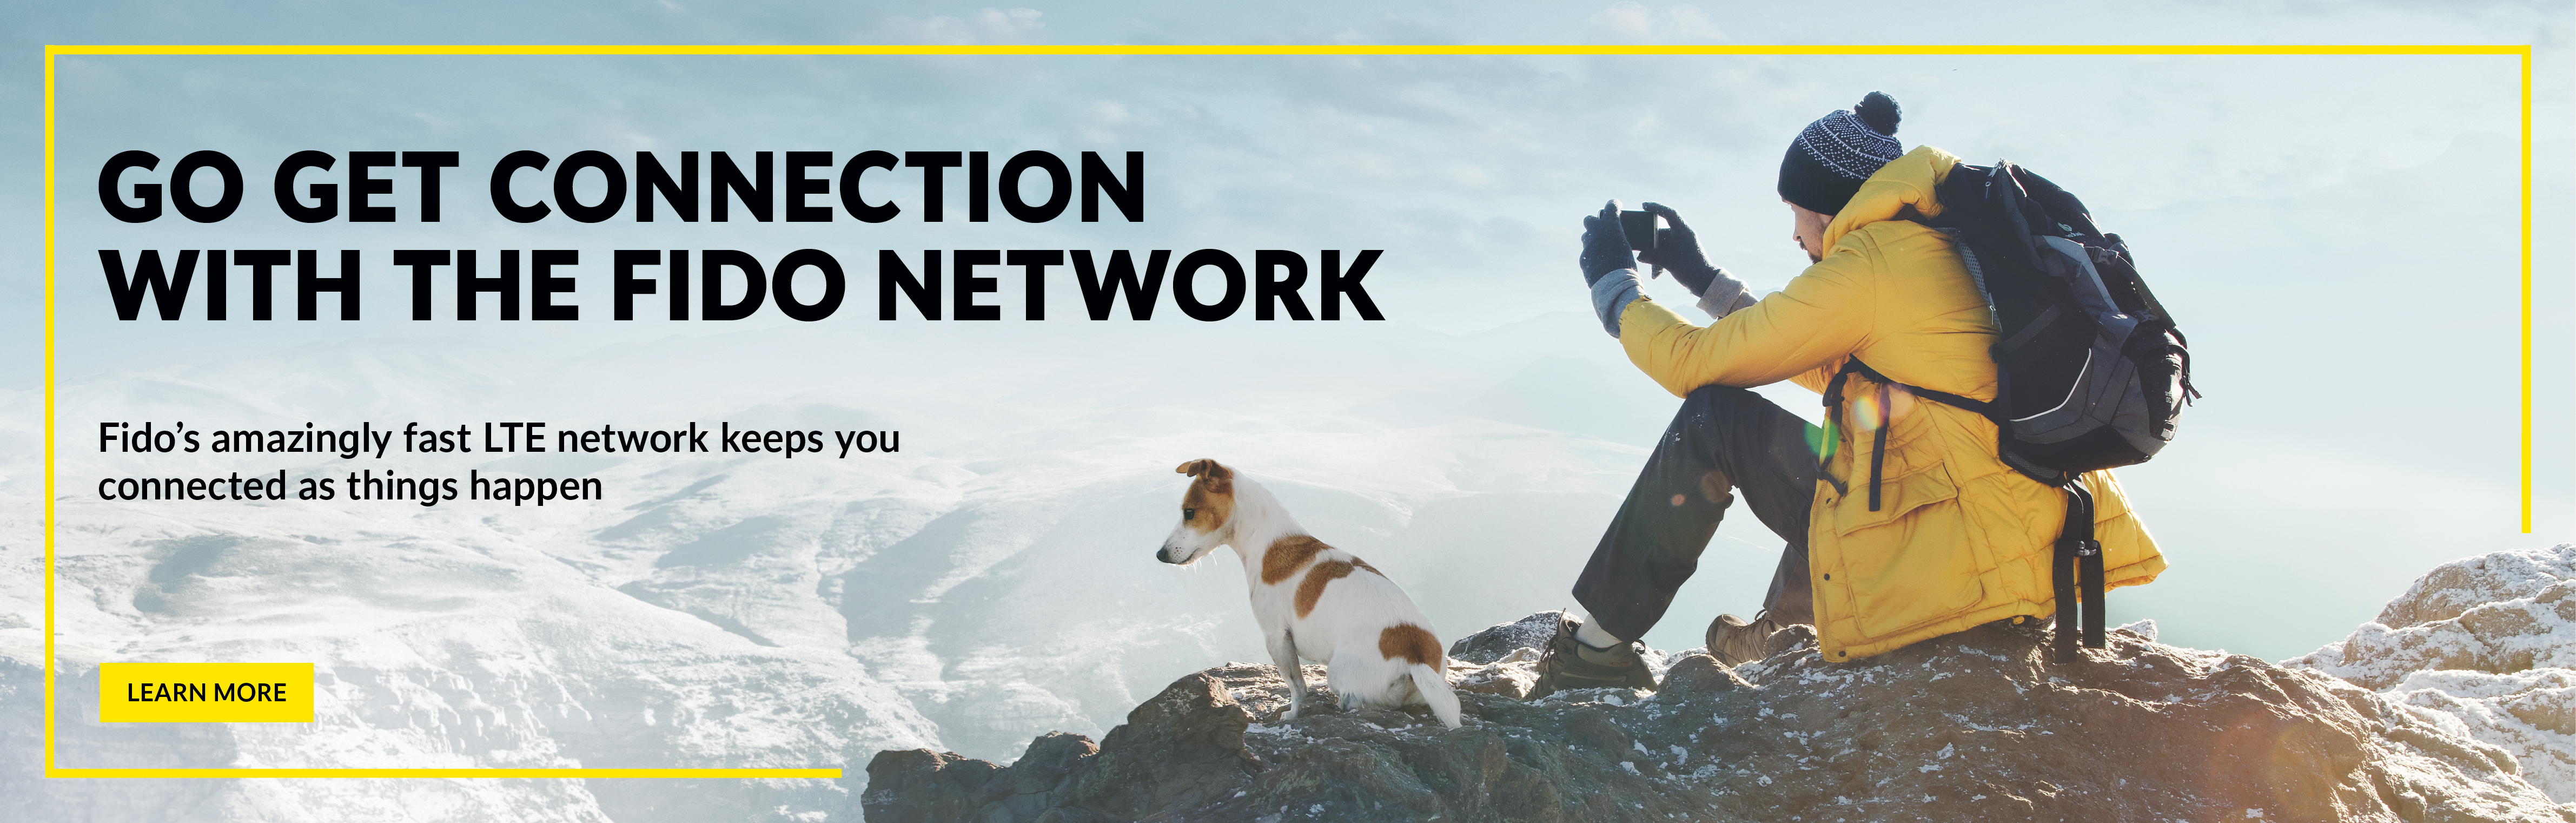 Go get connection with the Fido network